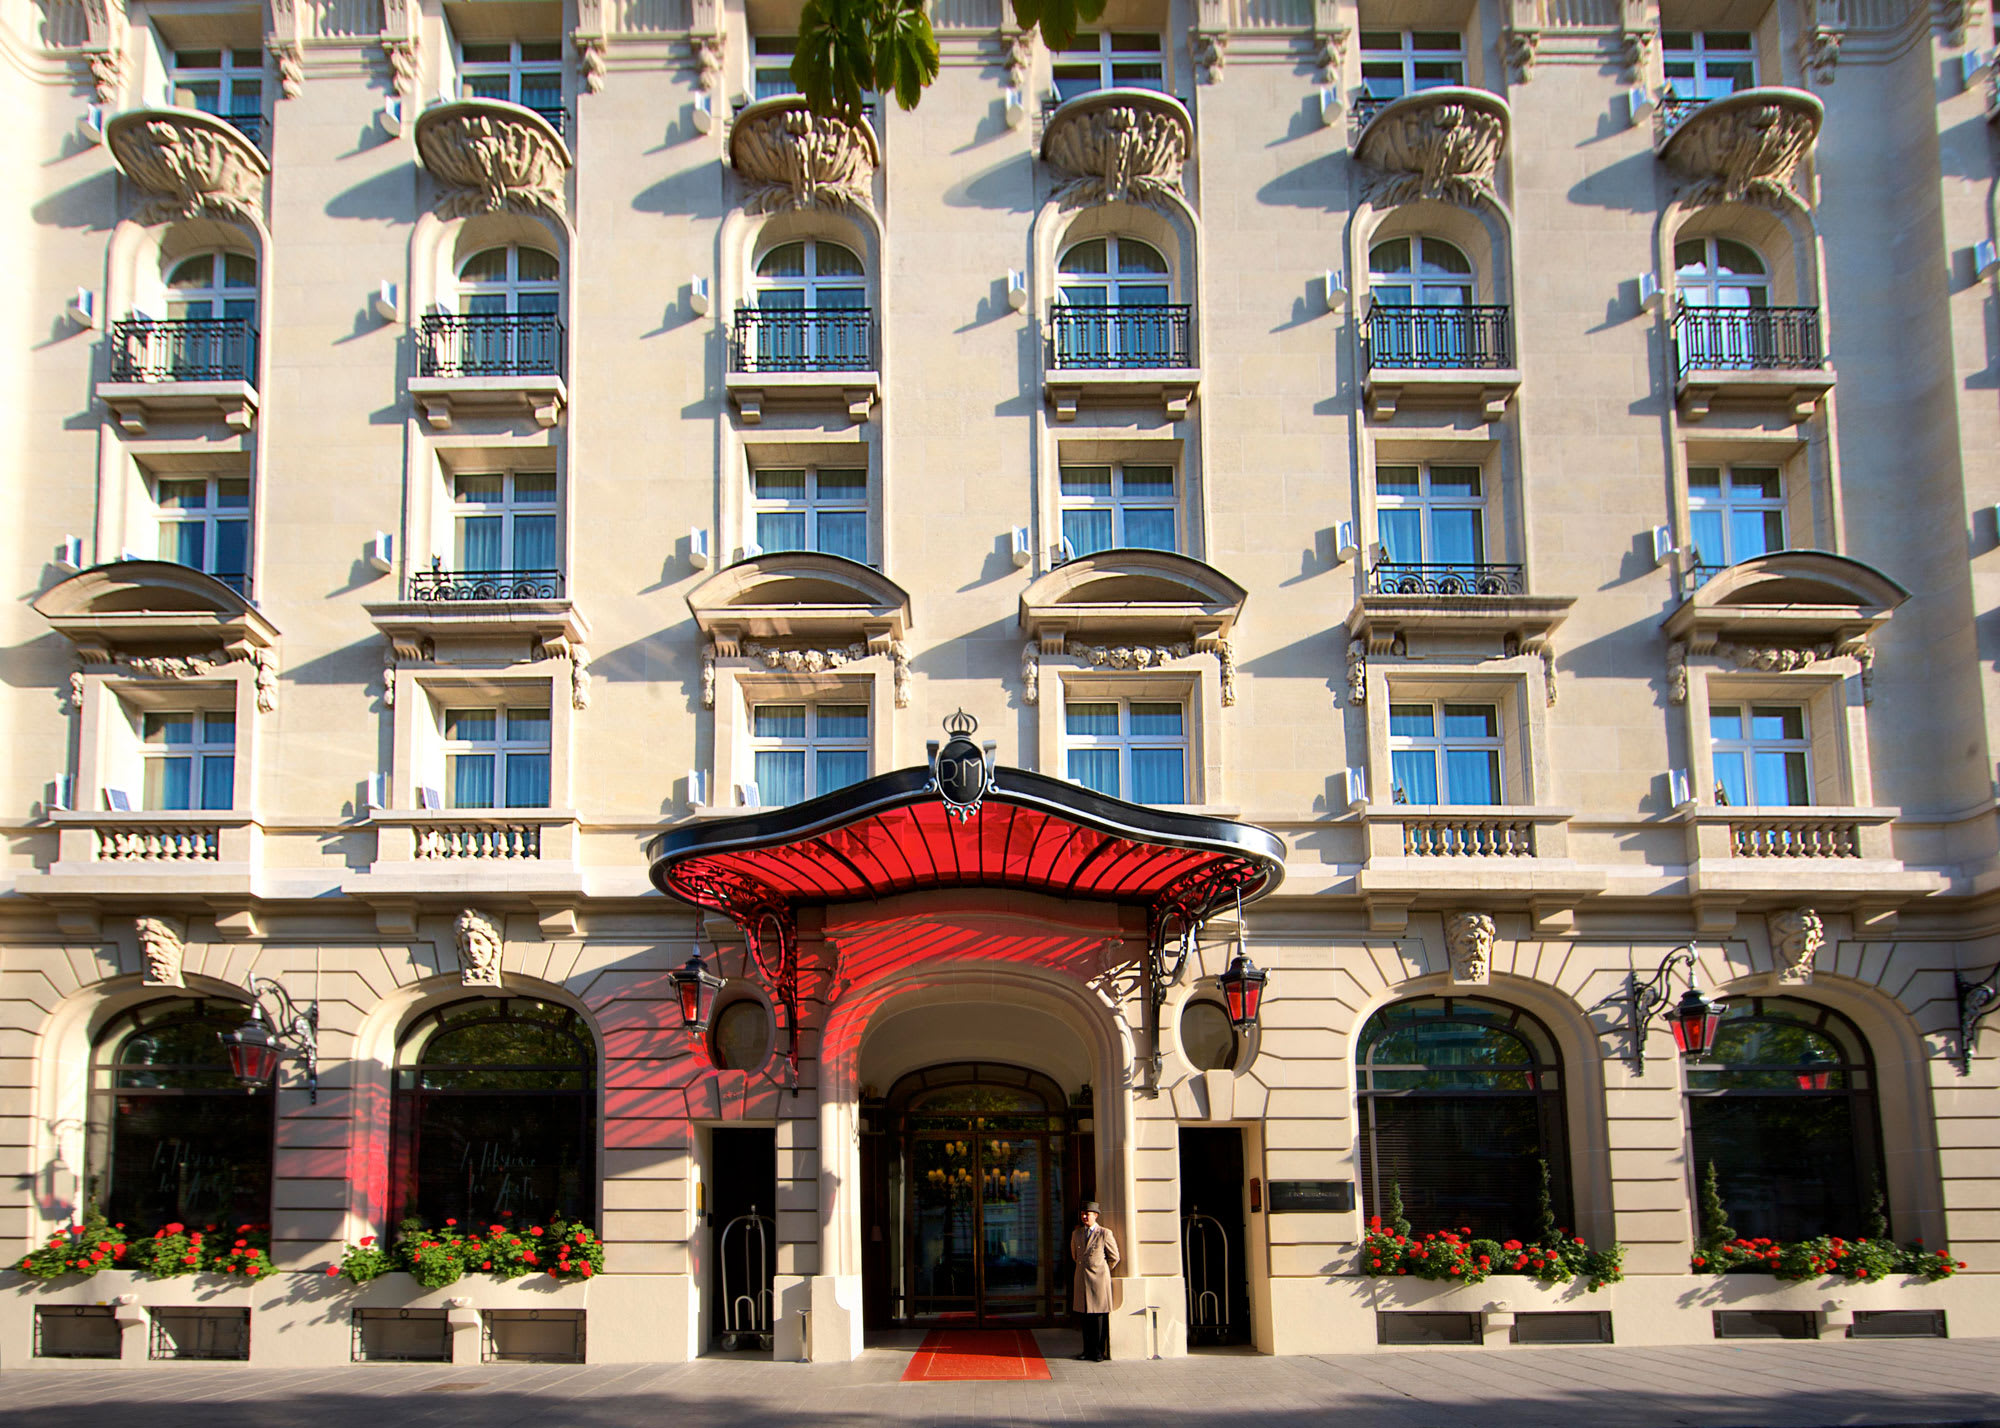 The exterior of the hotel with a doorman at the entrance